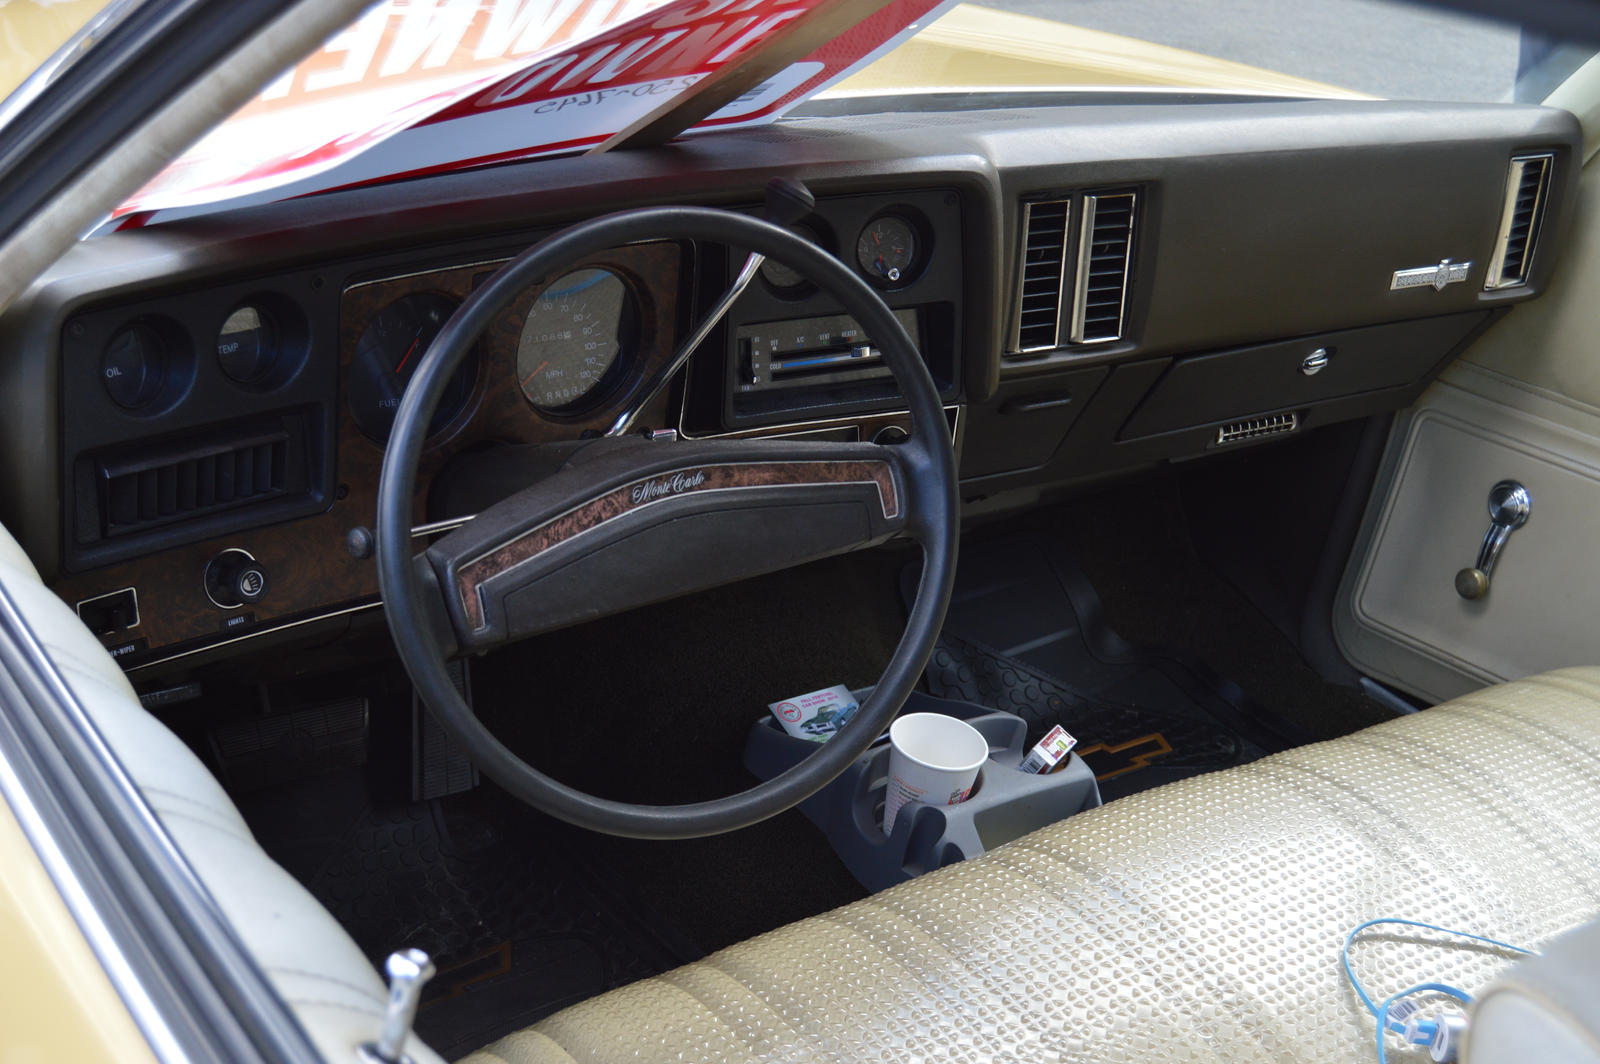 1973 Chevrolet Monte Carlo Interior by Brooklyn47 on DeviantArt